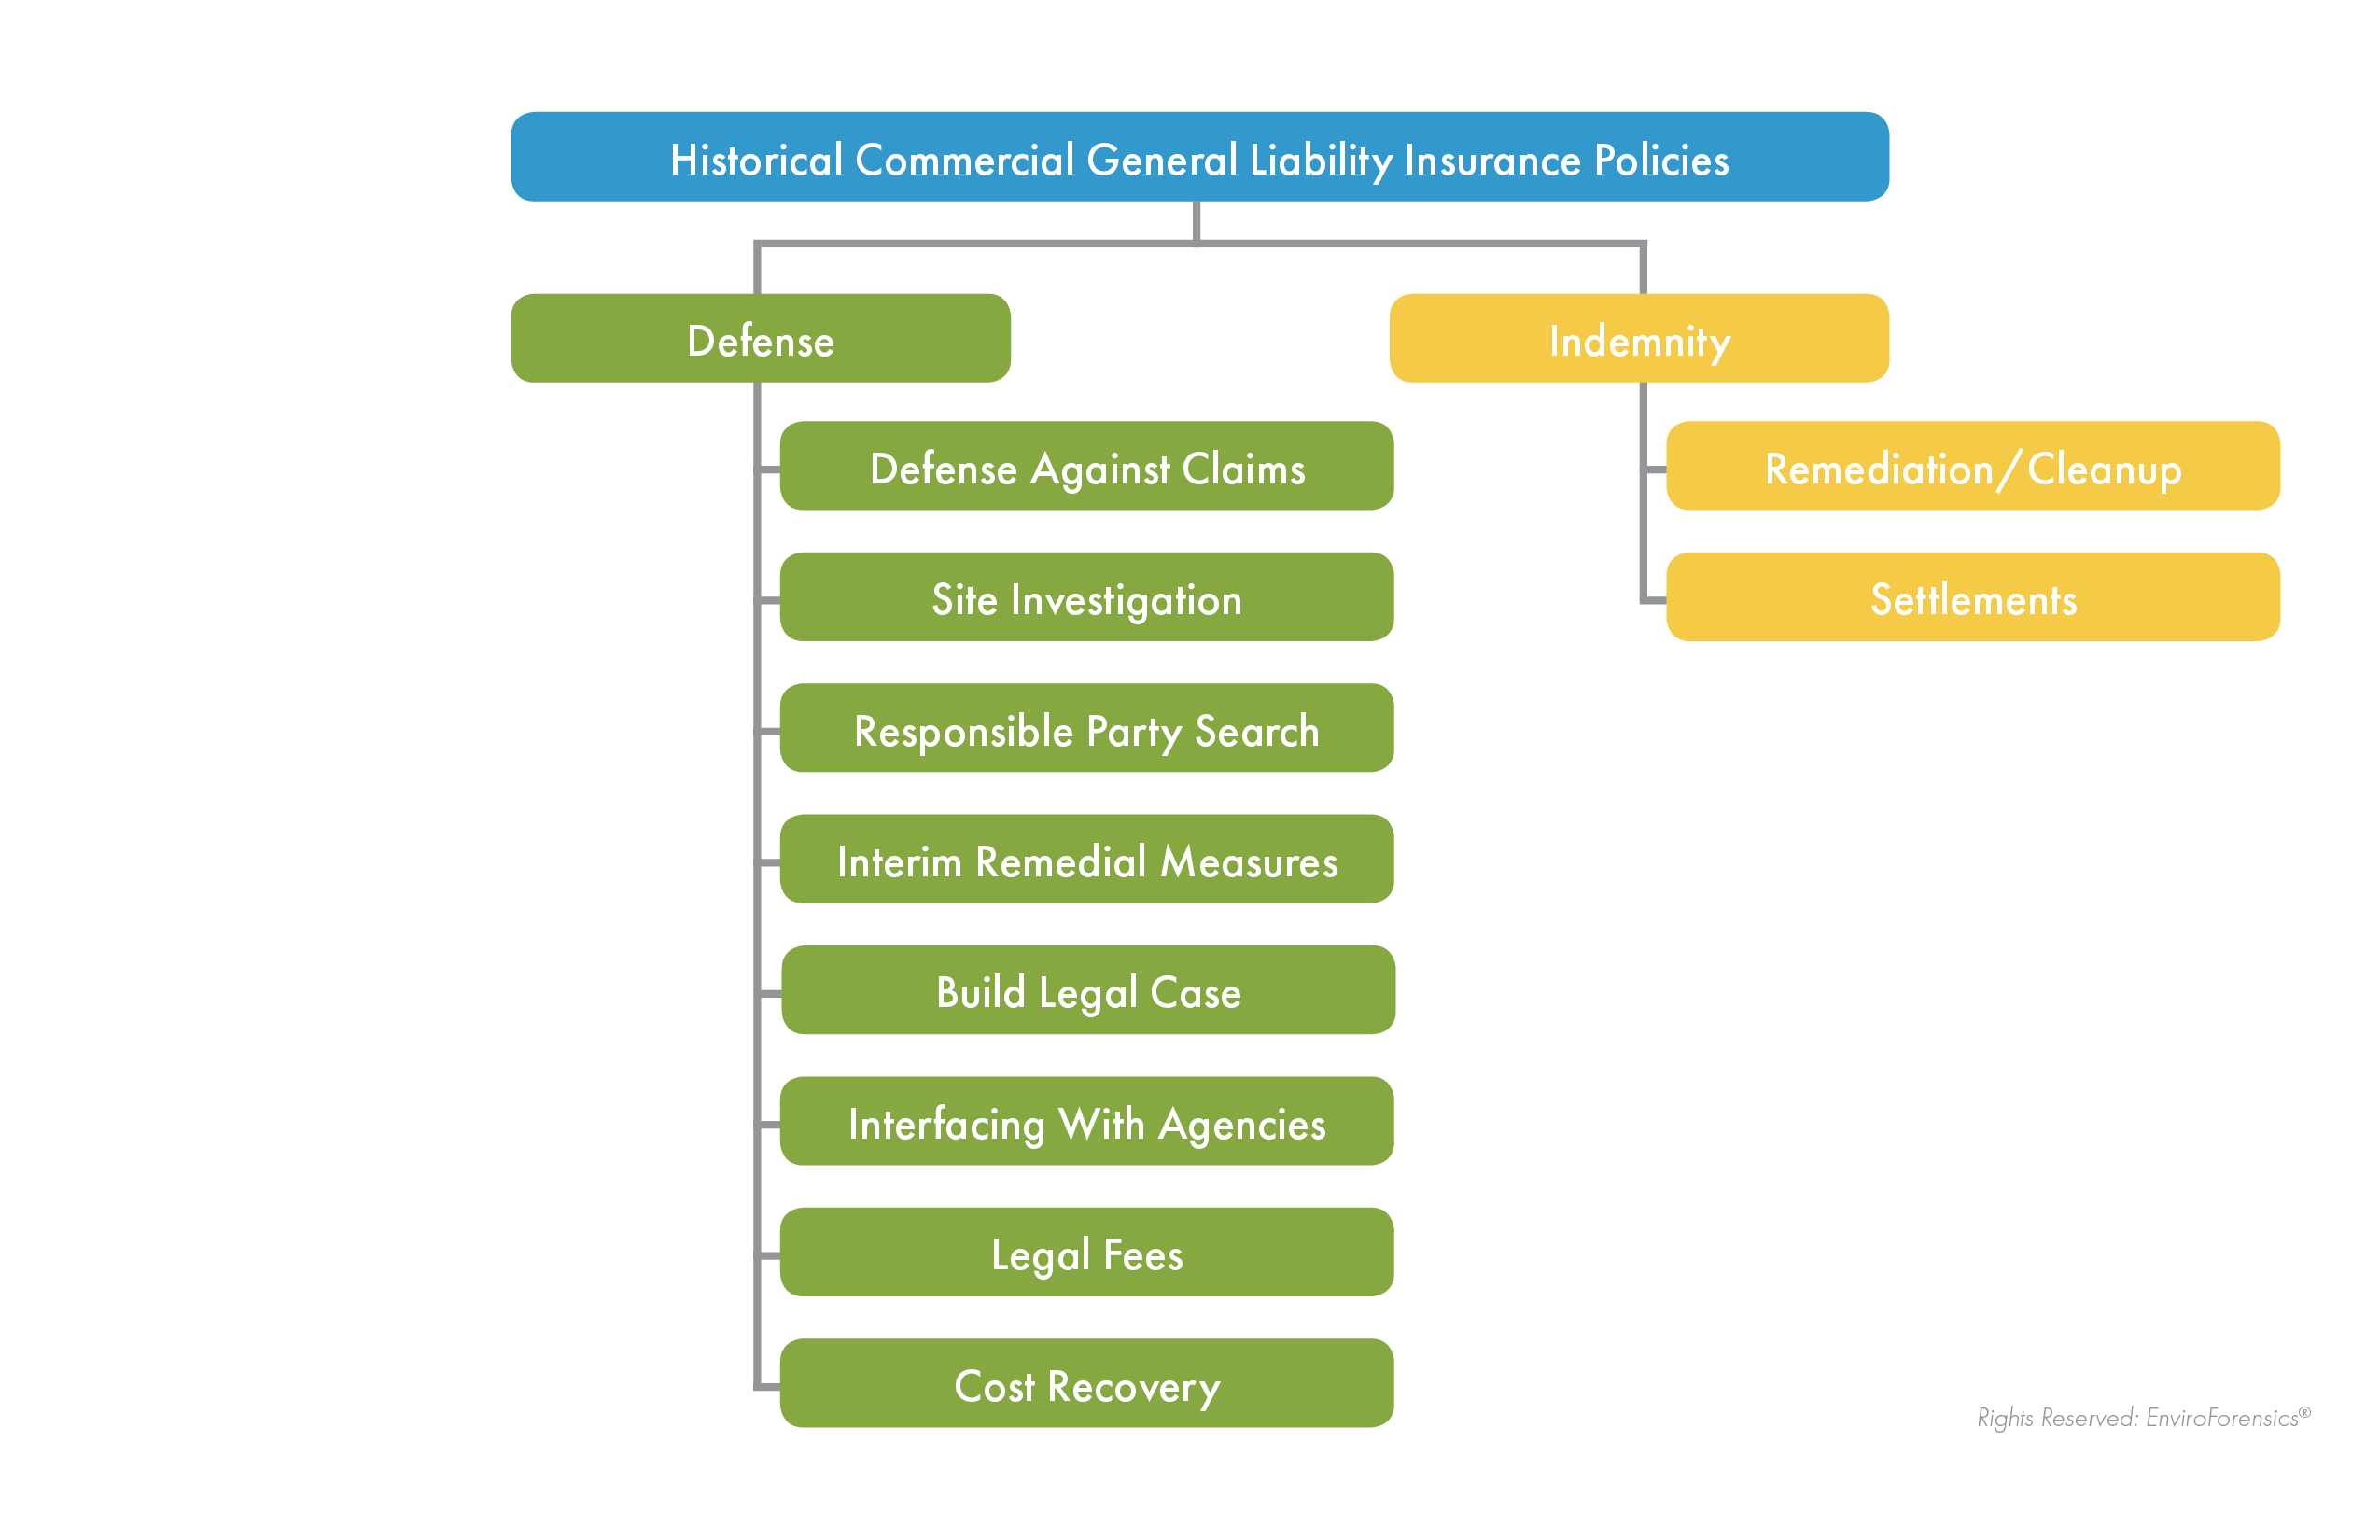 Diagram of what commercial general liability insurance policies cover